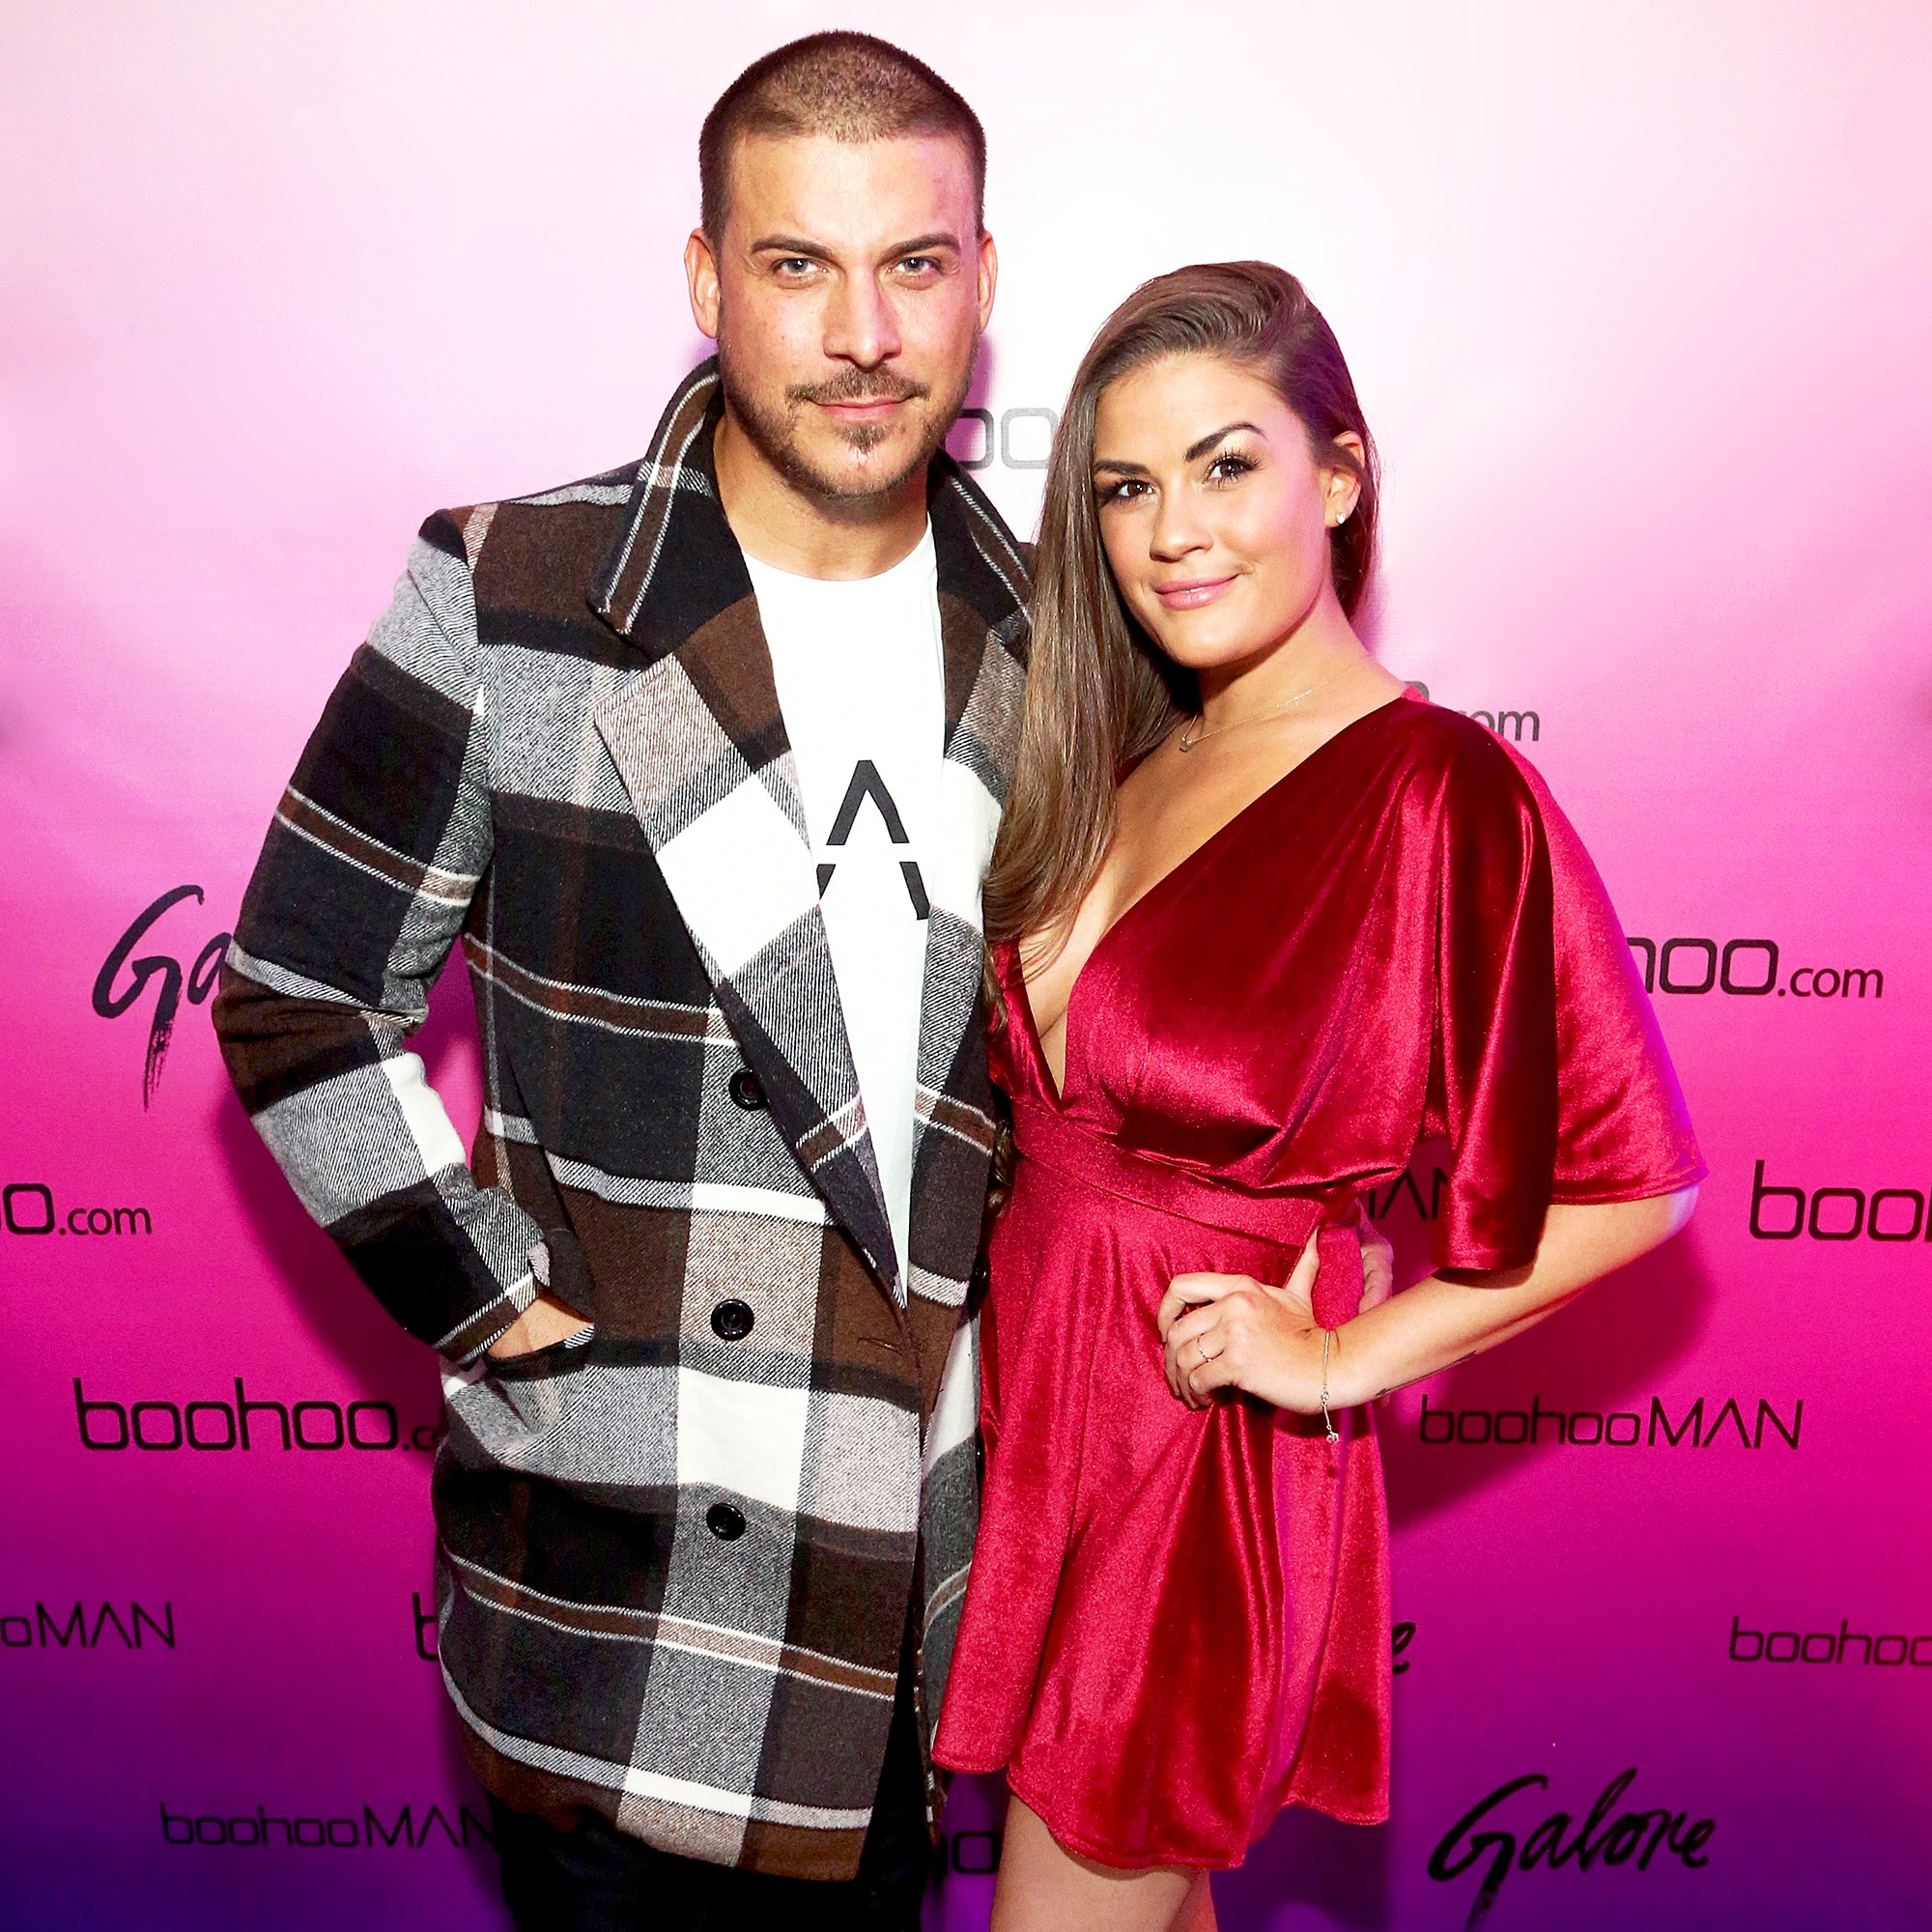 Jax Taylor and Brittany Cartwright at the boohoo.com LA Pop-up Store Launch Party with Galore Magazine on November 1, 2017 in Los Angeles, California.